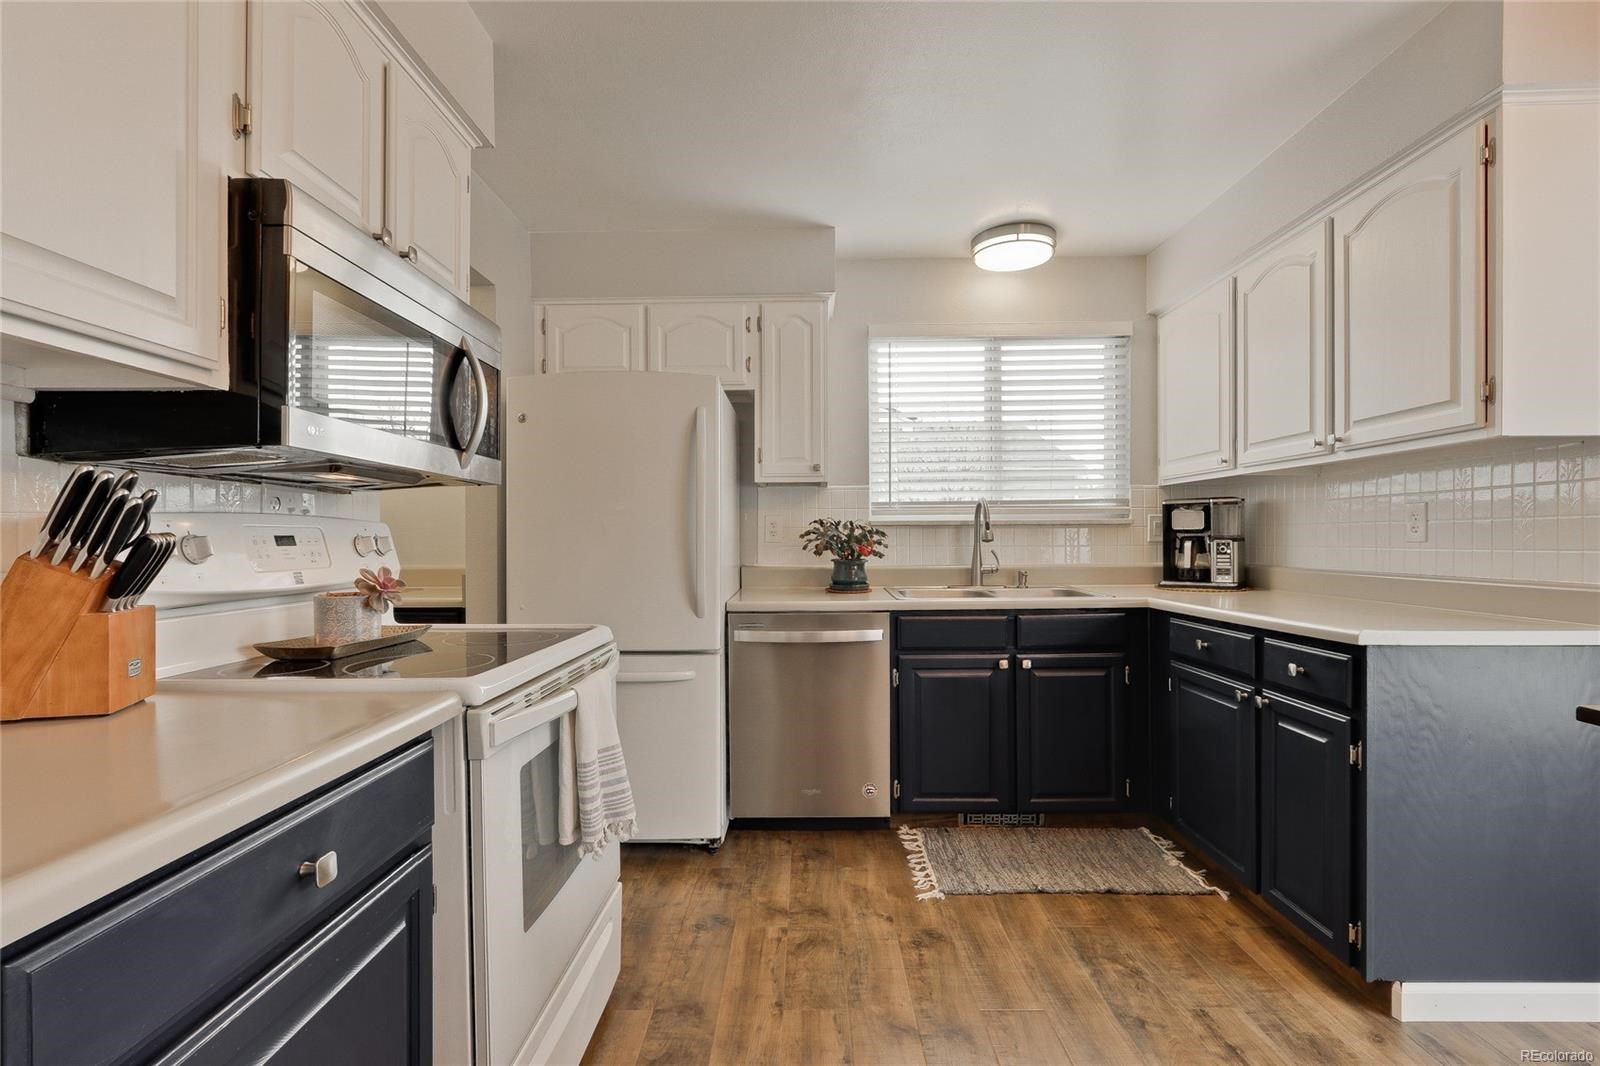 MLS# 9811960 - 12 - 7500 Chase Street, Arvada, CO 80003